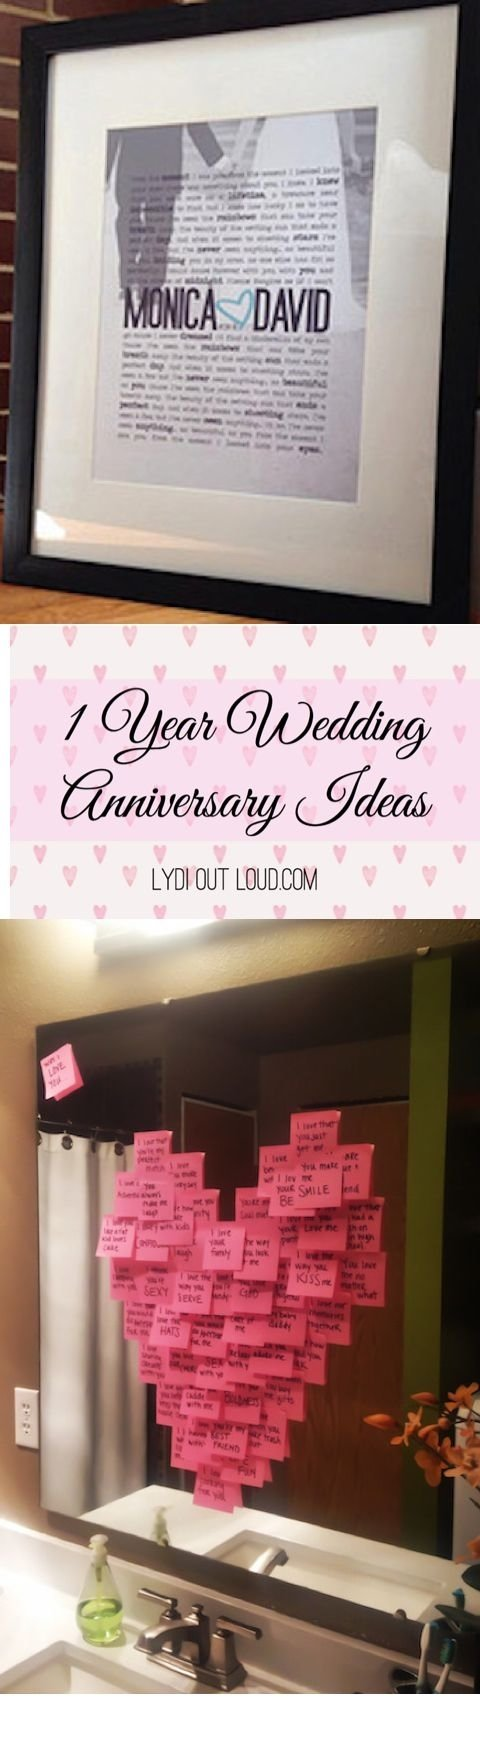 10 Most Popular One Year Anniversary Gift Ideas For Him stunning 2 year wedding anniversary gifts for her gallery styles 2 2021